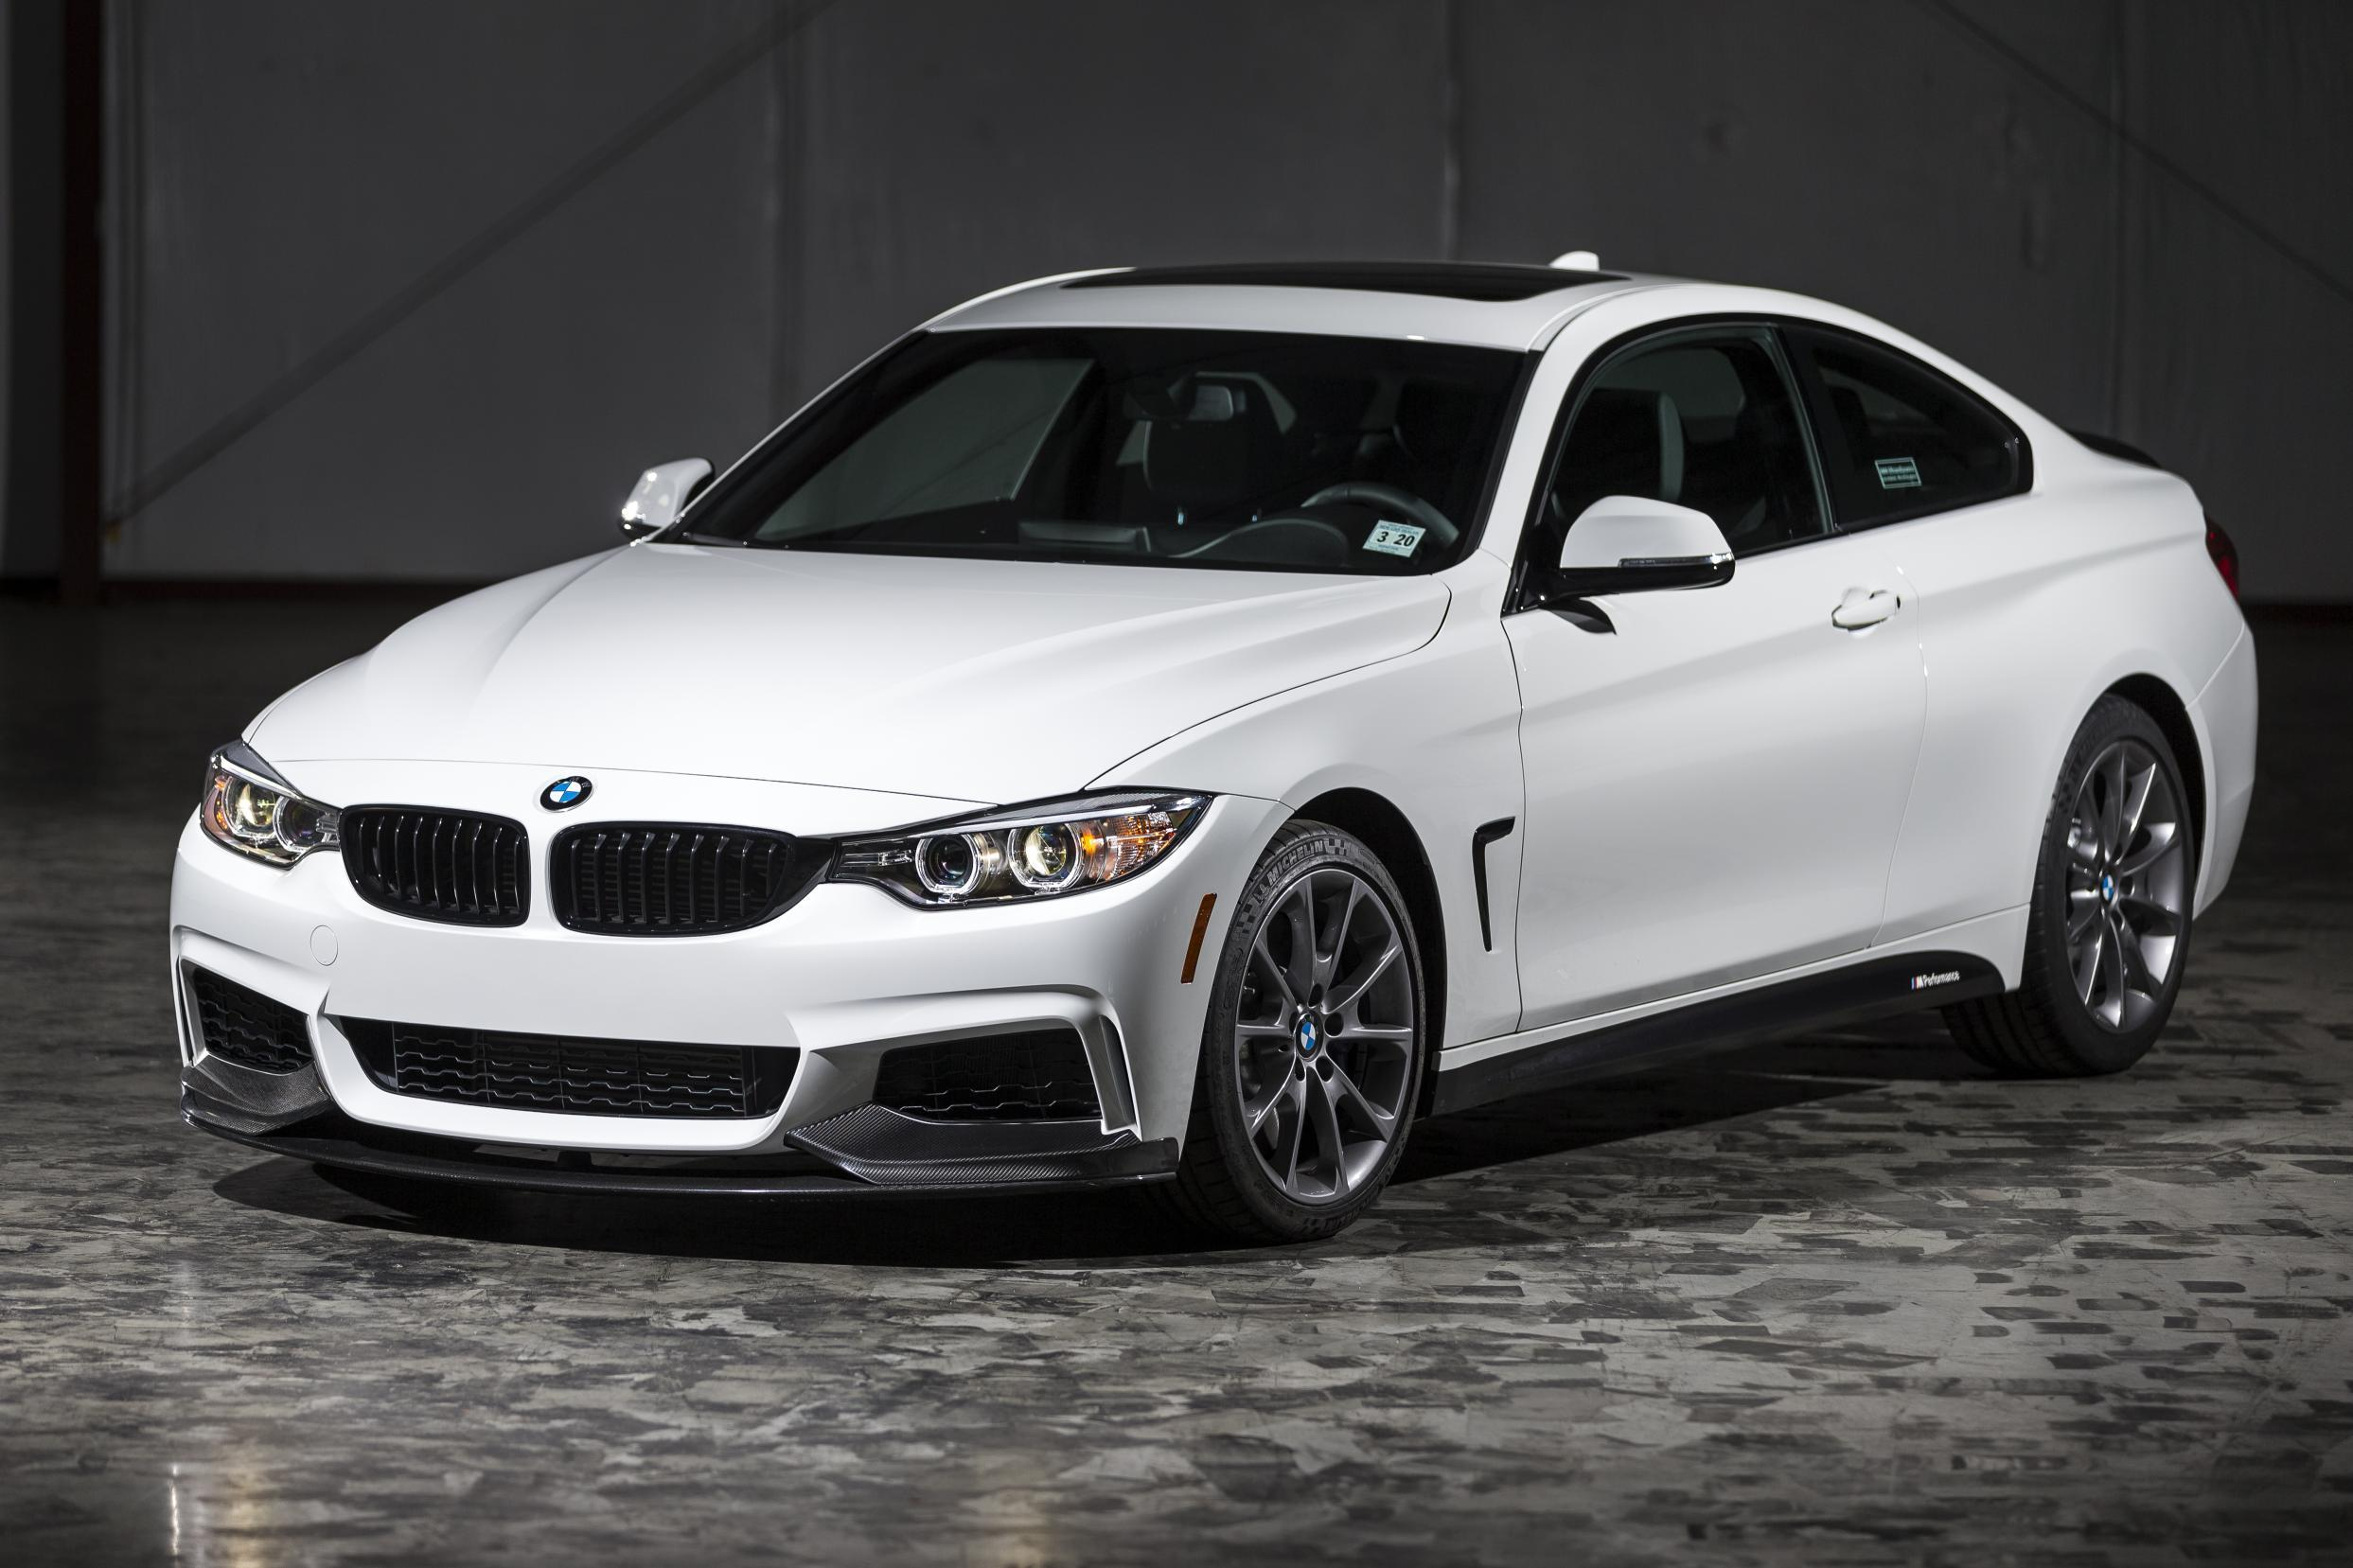 The BMW 435i ZHP Coupe Edition, a special edition that is truly special